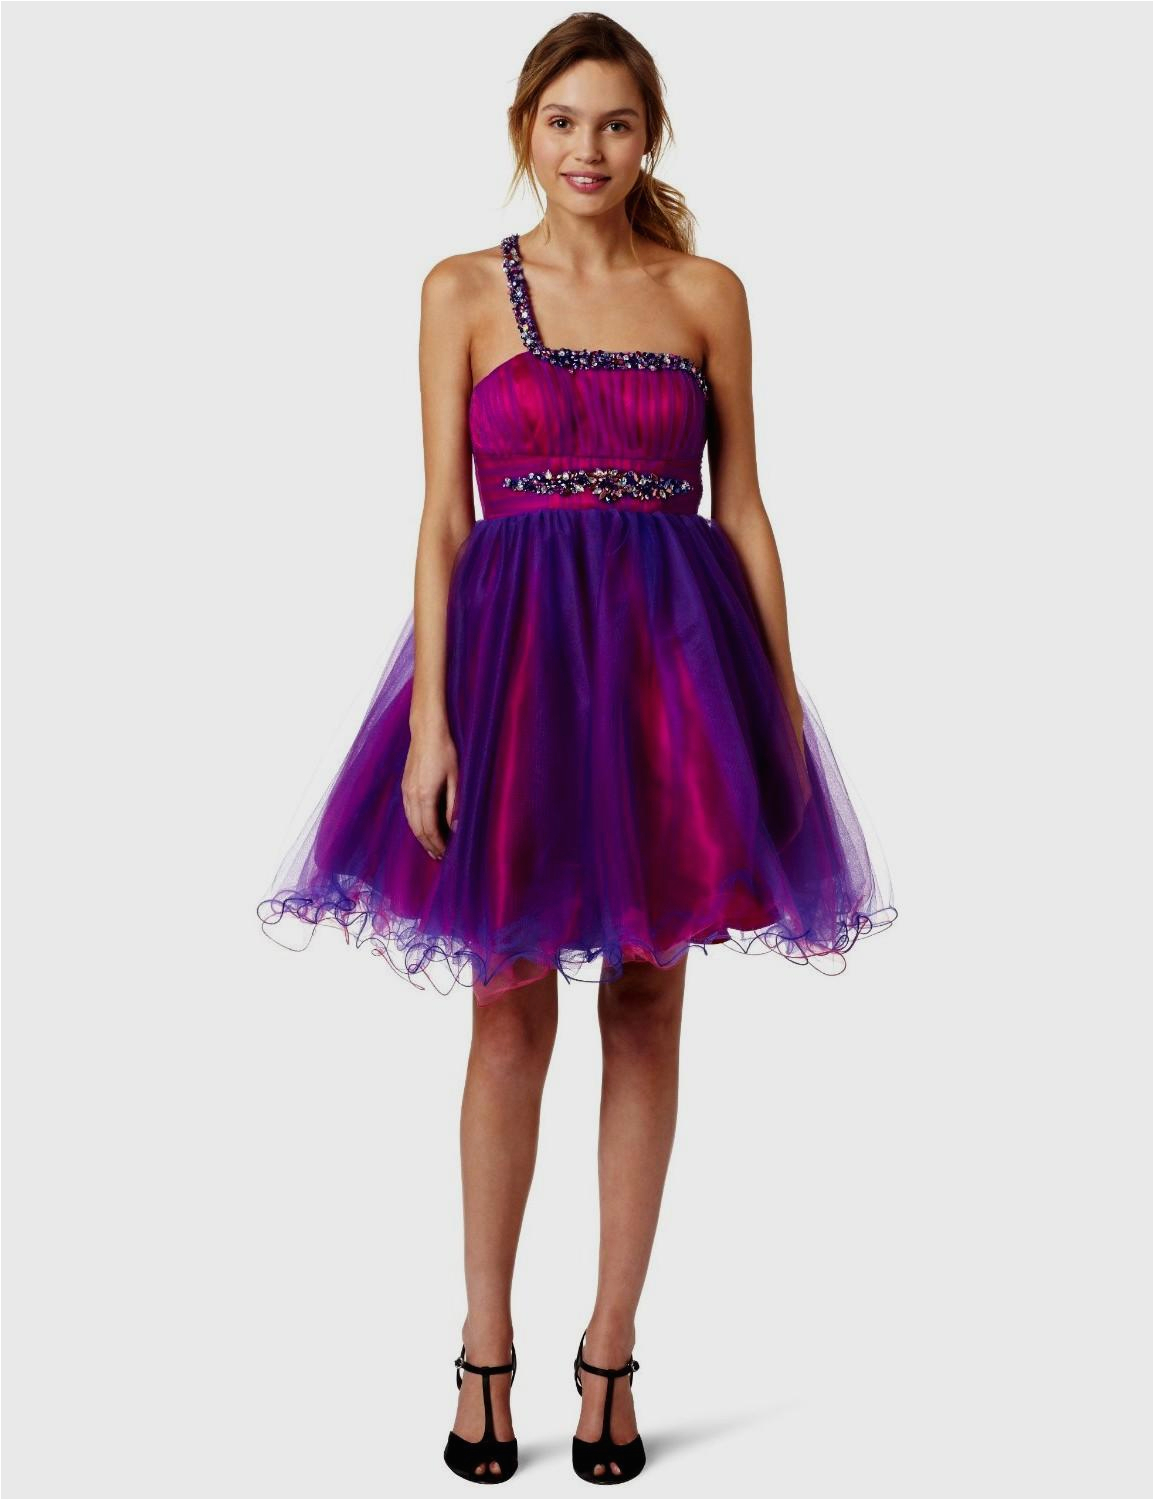 Birthday Dresses for Teenagers Dresses for Teenage Girls for Parties Naf Dresses